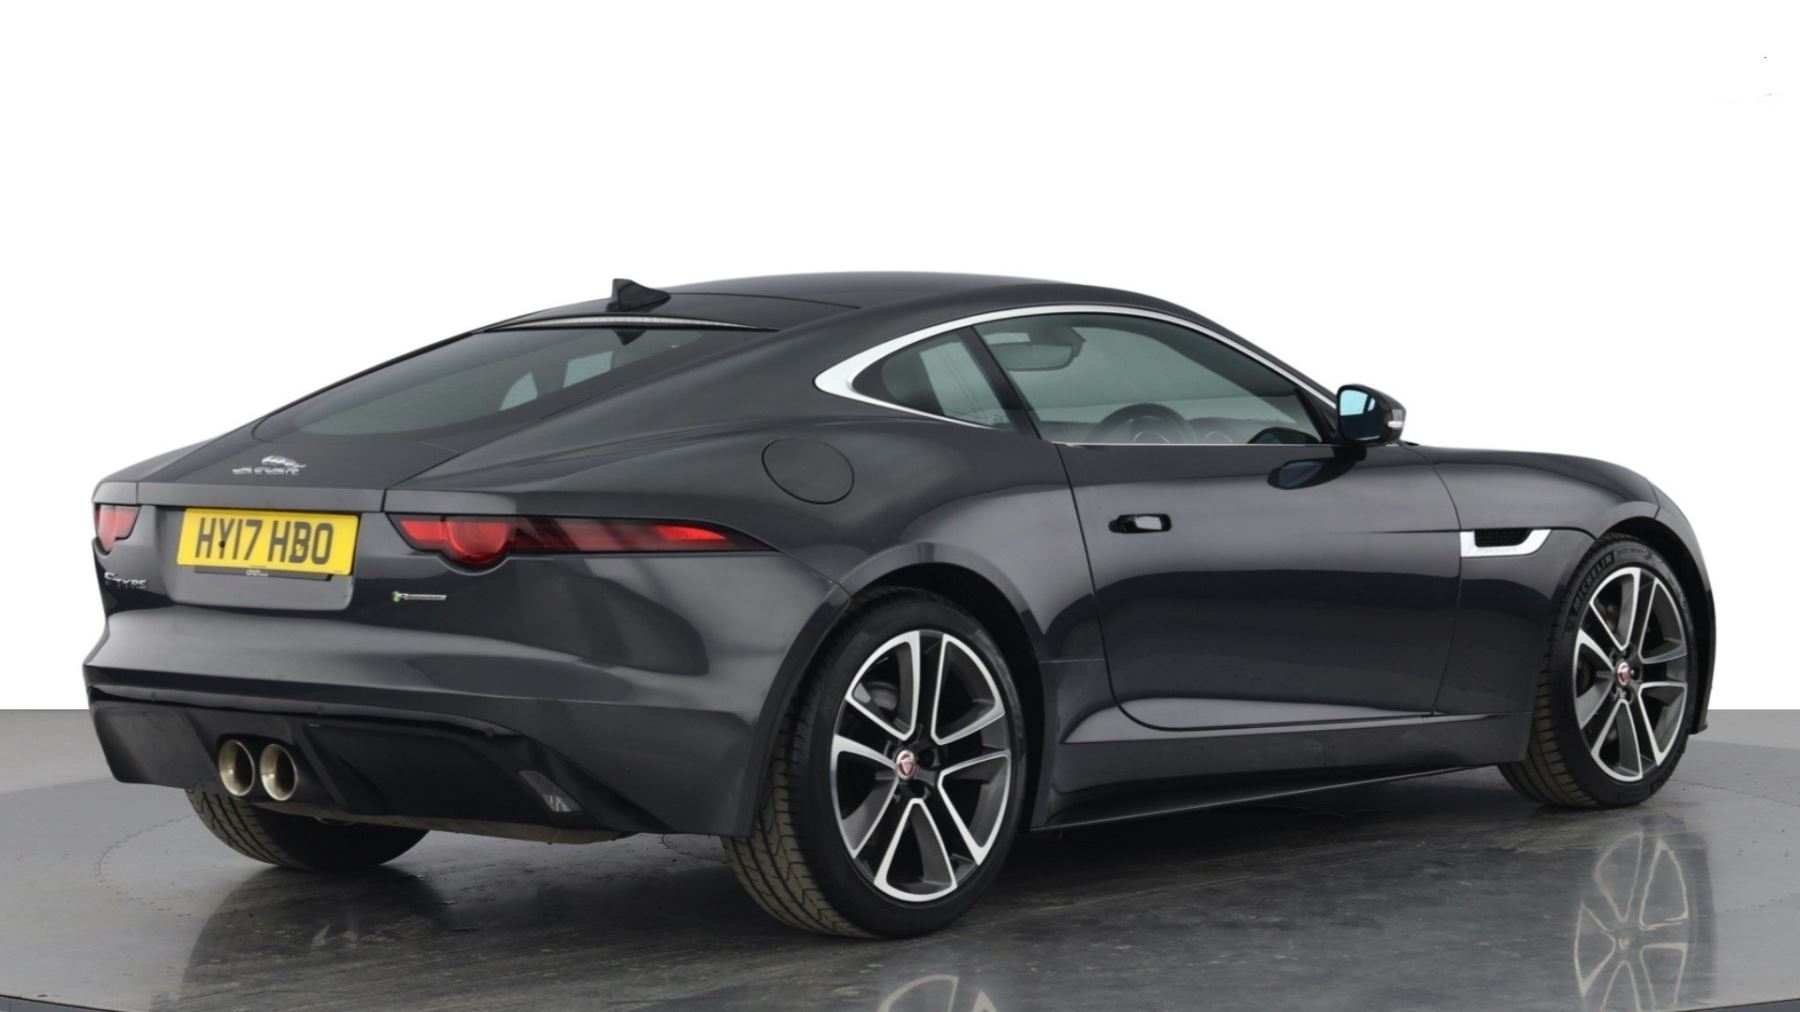 Jaguar F-TYPE 3.0 Supercharged V6 R-Dynamic with Panoramic Sunroof and Meridian Surround Sound image 9